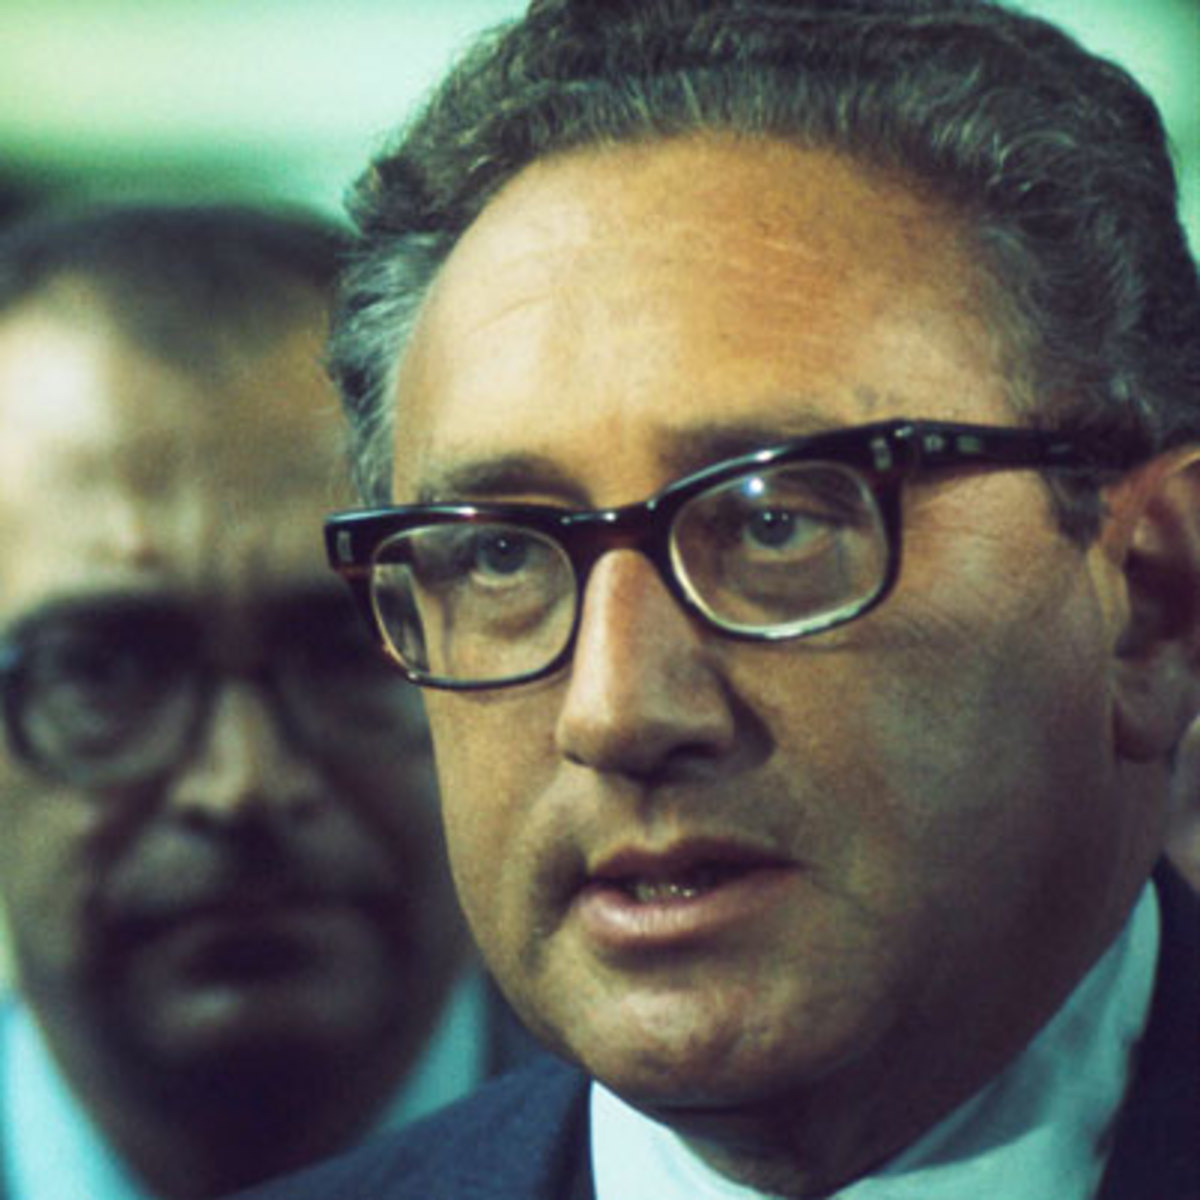 Henry Kissinger - Architect of the New World Order